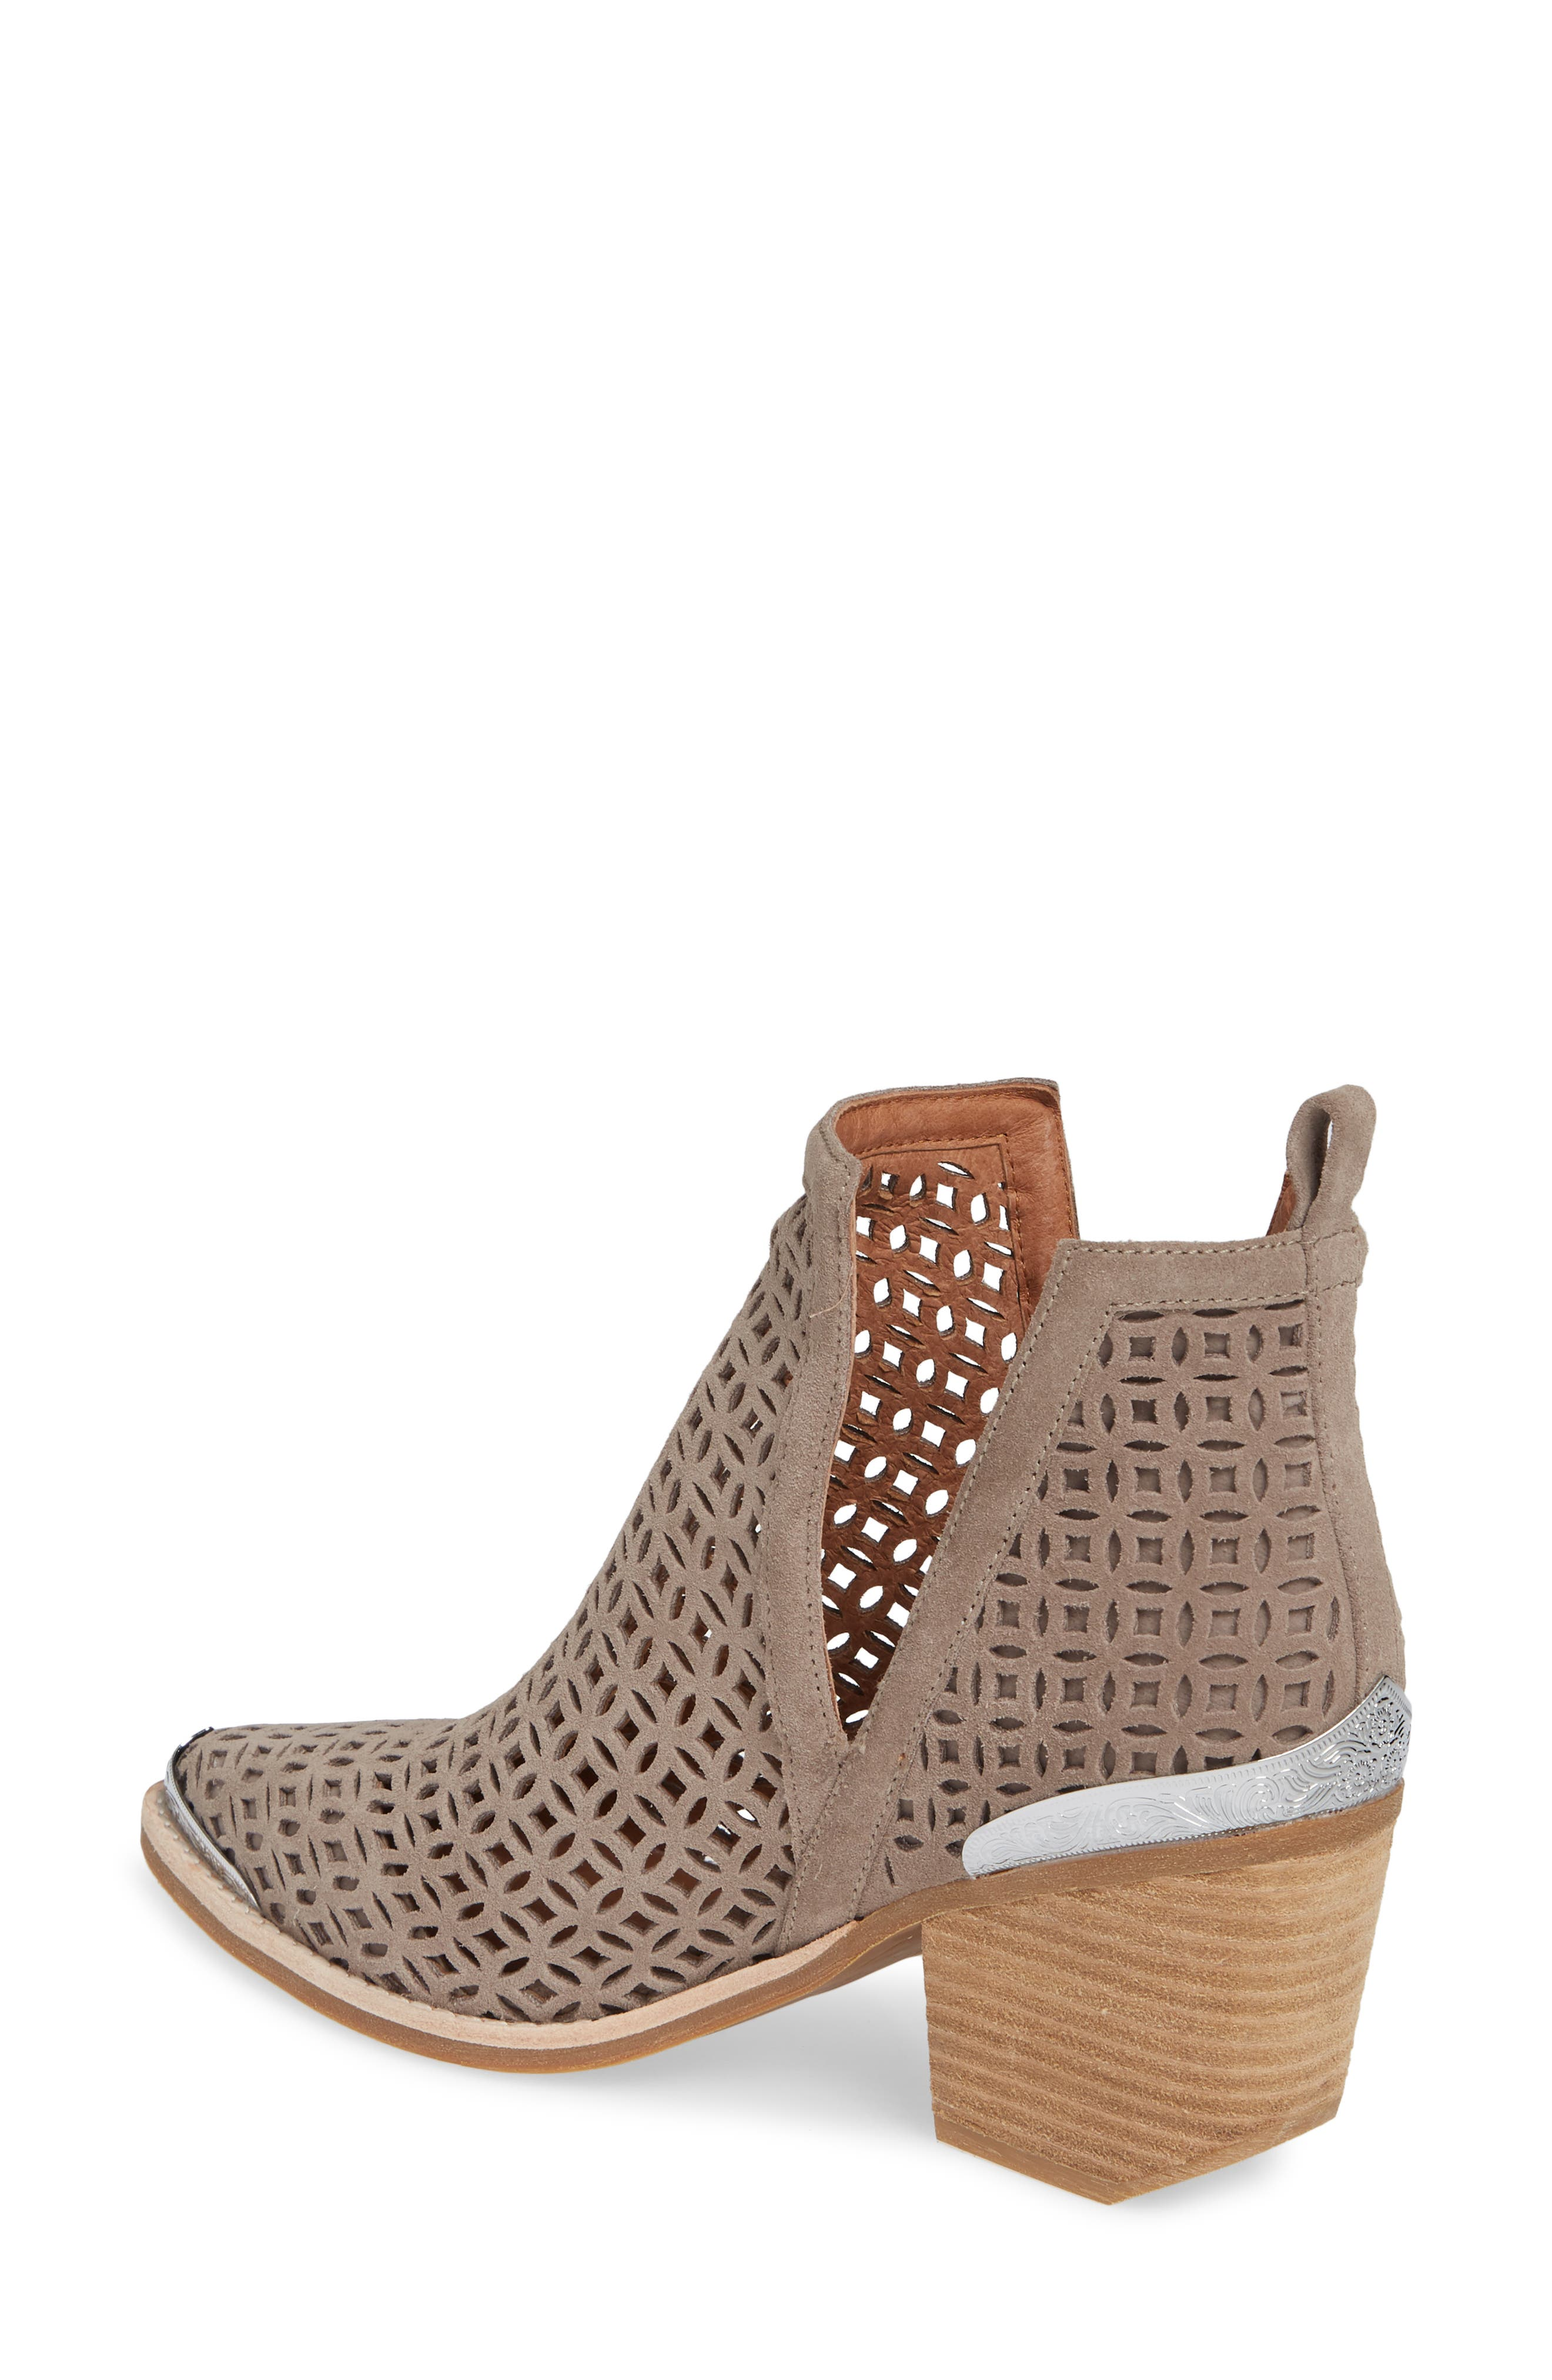 JEFFREY CAMPBELL, Cromwell-C2 Perforated Bootie, Alternate thumbnail 2, color, TAUPE SUEDE